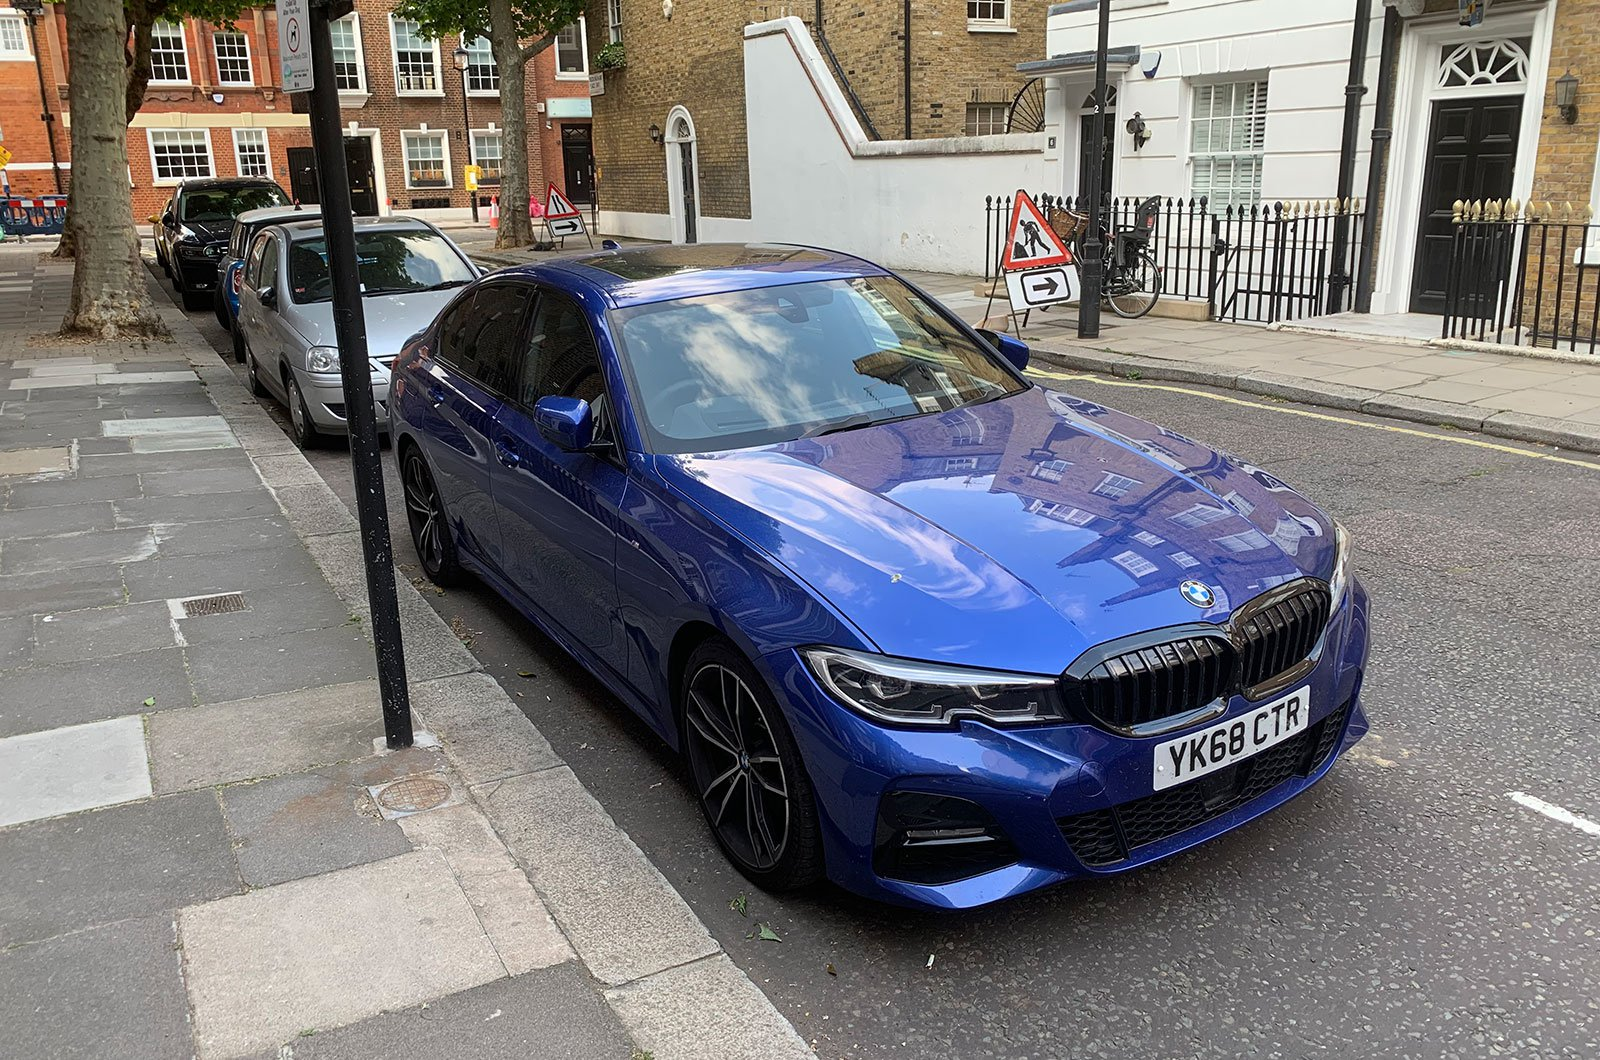 BMW 3 Series parked in London